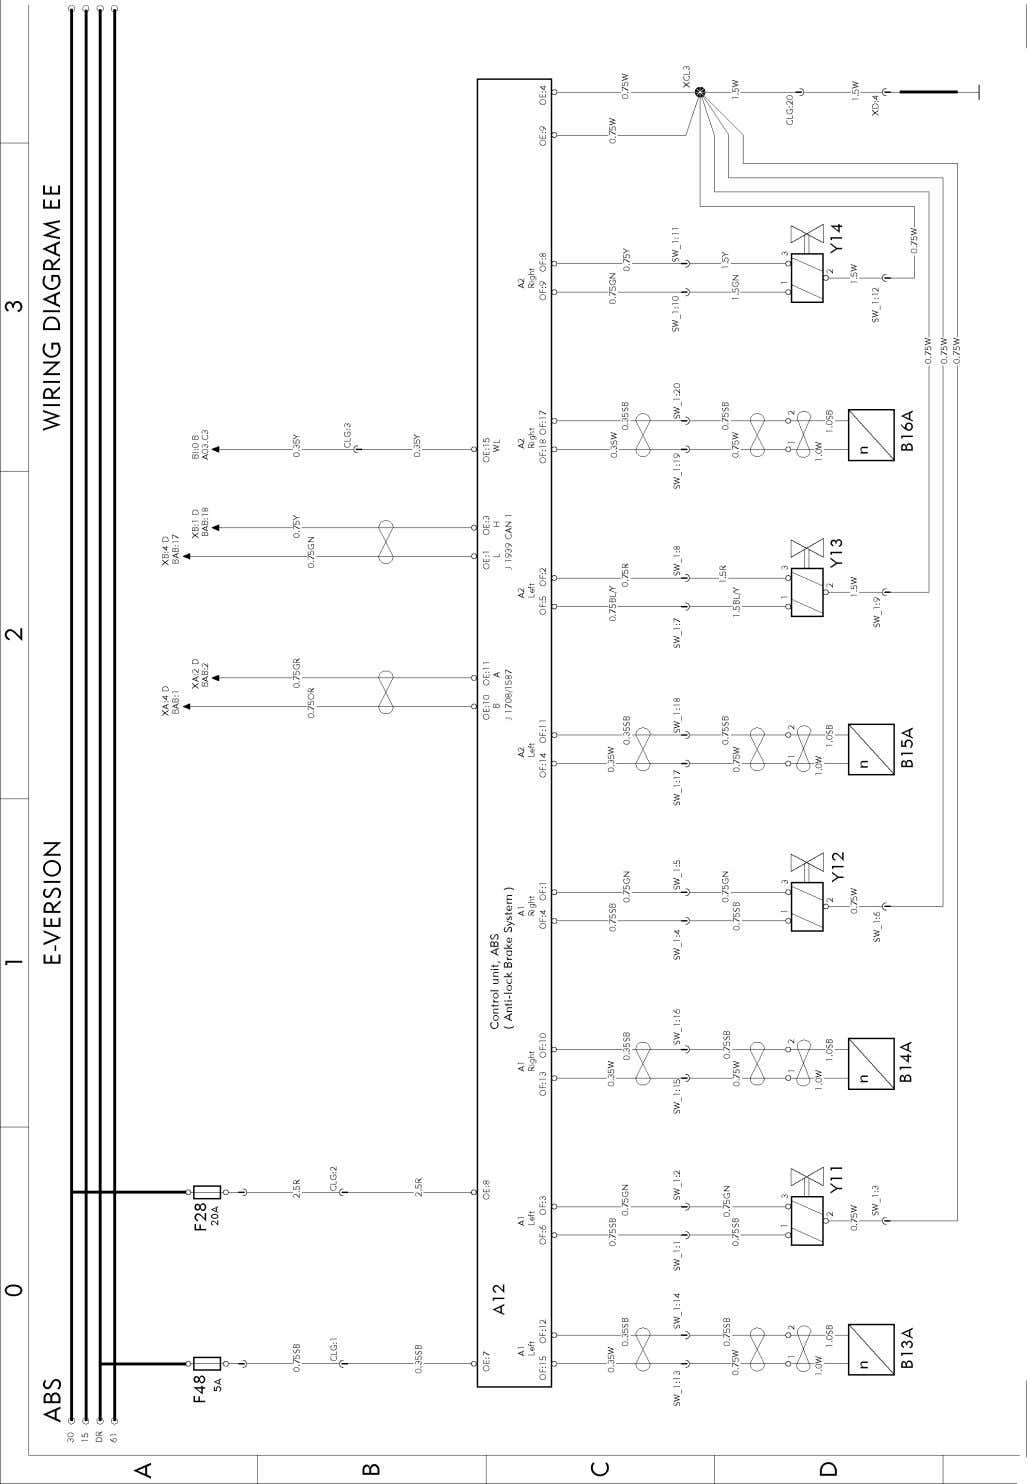 T3022001 Page 40 (298) Wiring diagram